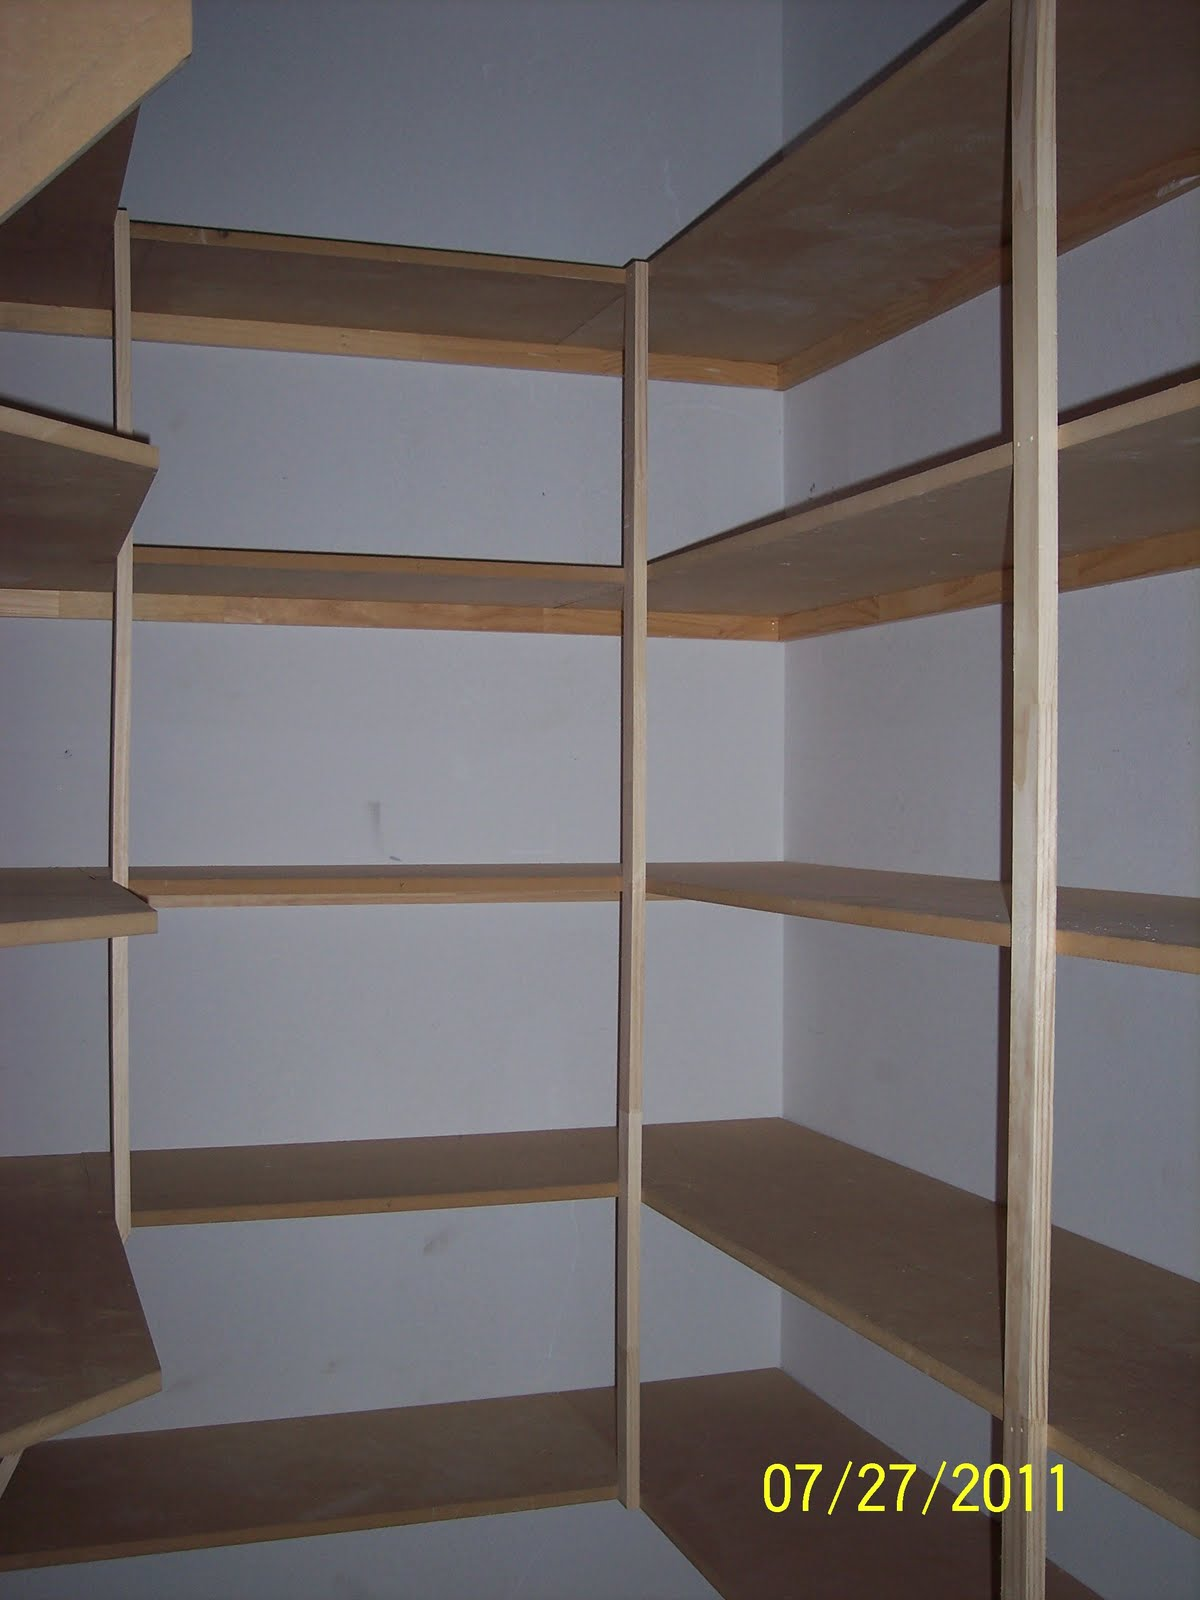 Marvelous photograph of Pantry Shelves . with #A5A526 color and 1200x1600 pixels